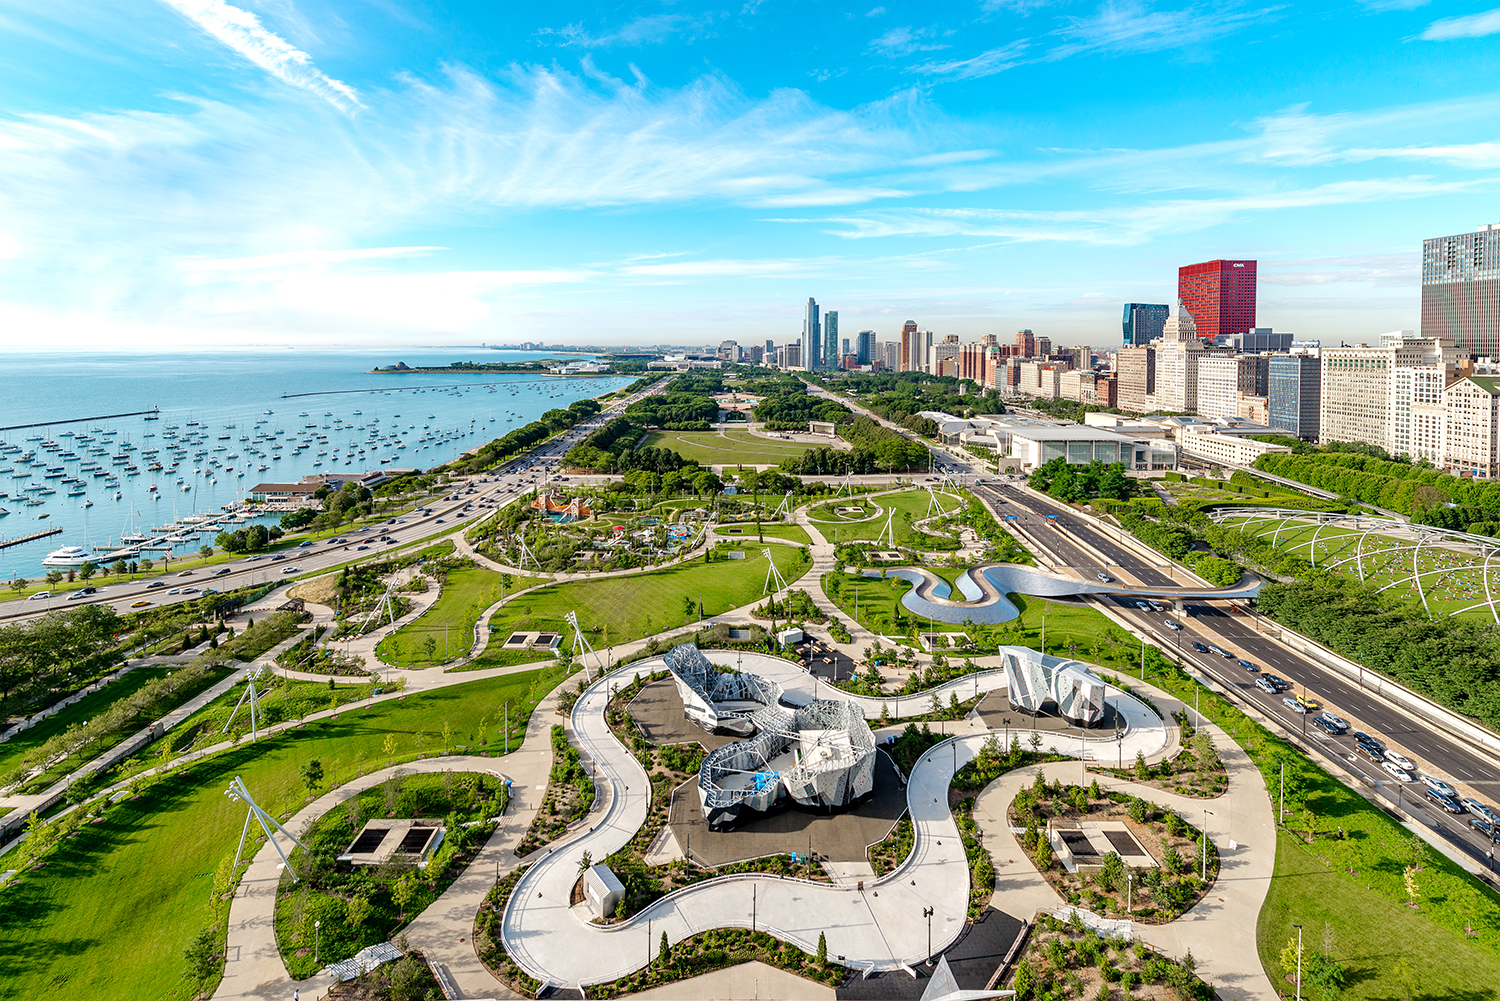 Maggie Daley Park - City of Chicago